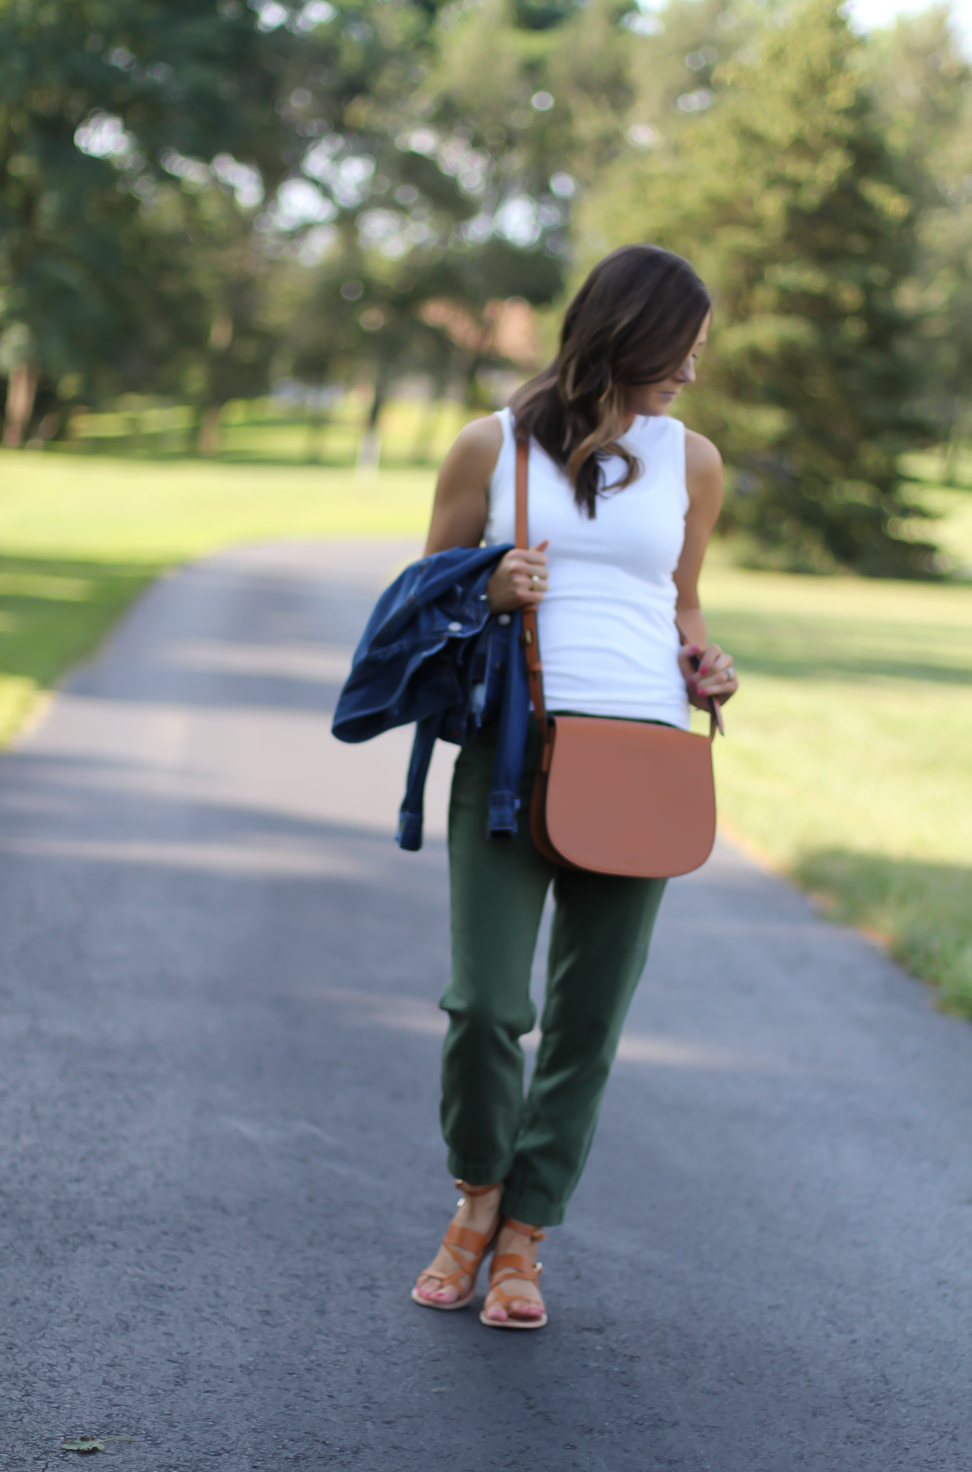 Army Green Joggers, White Sleeveless Shell Tee, Gladiator Sandals, Saddle Bag, J.Crew, tory Burch, Ancient Gladiator 7